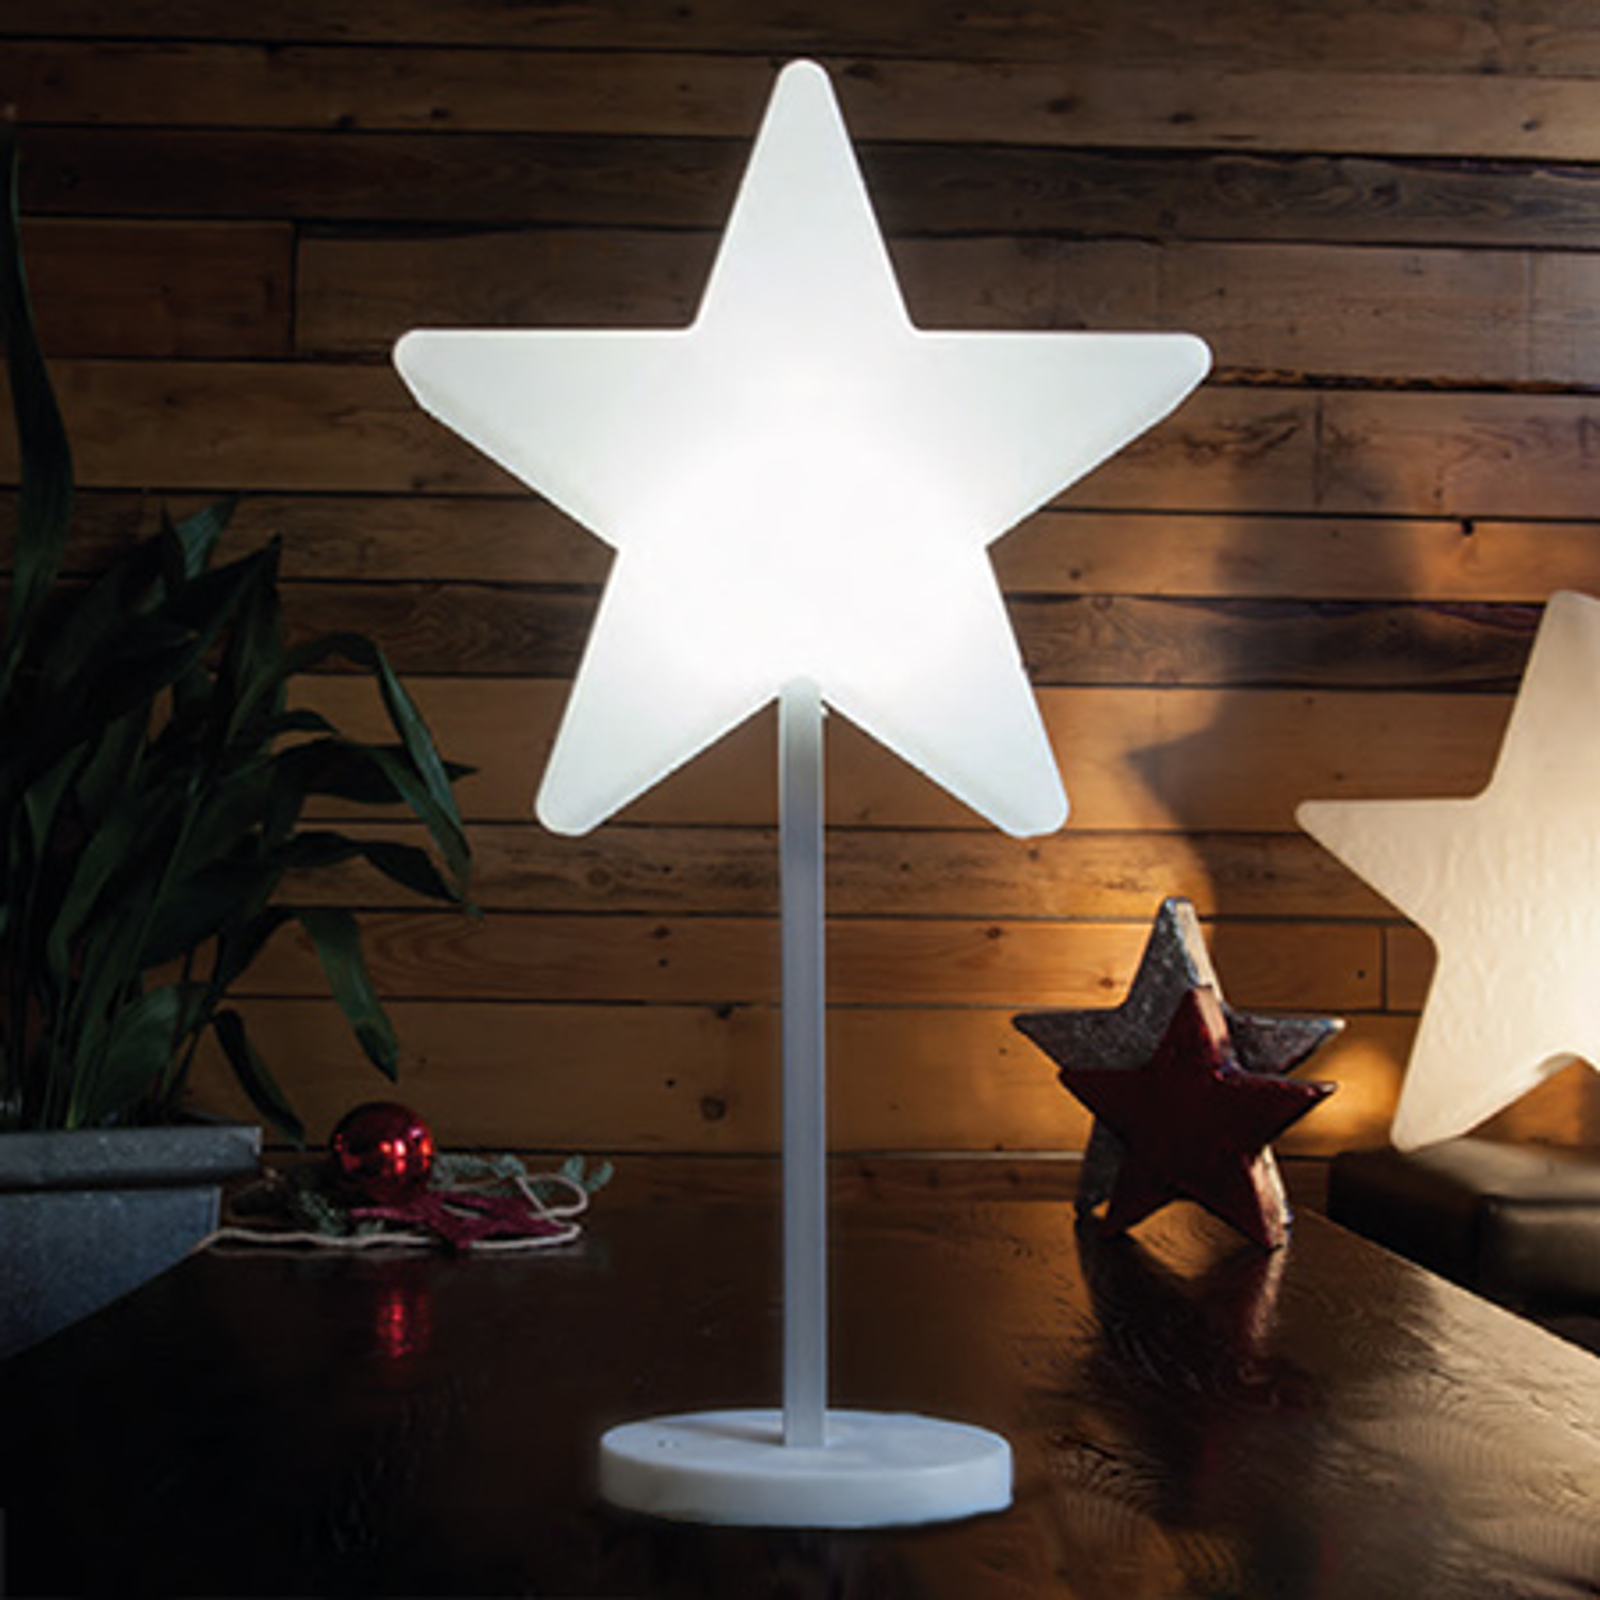 Jolie lampe décorative LED Shining Window Star